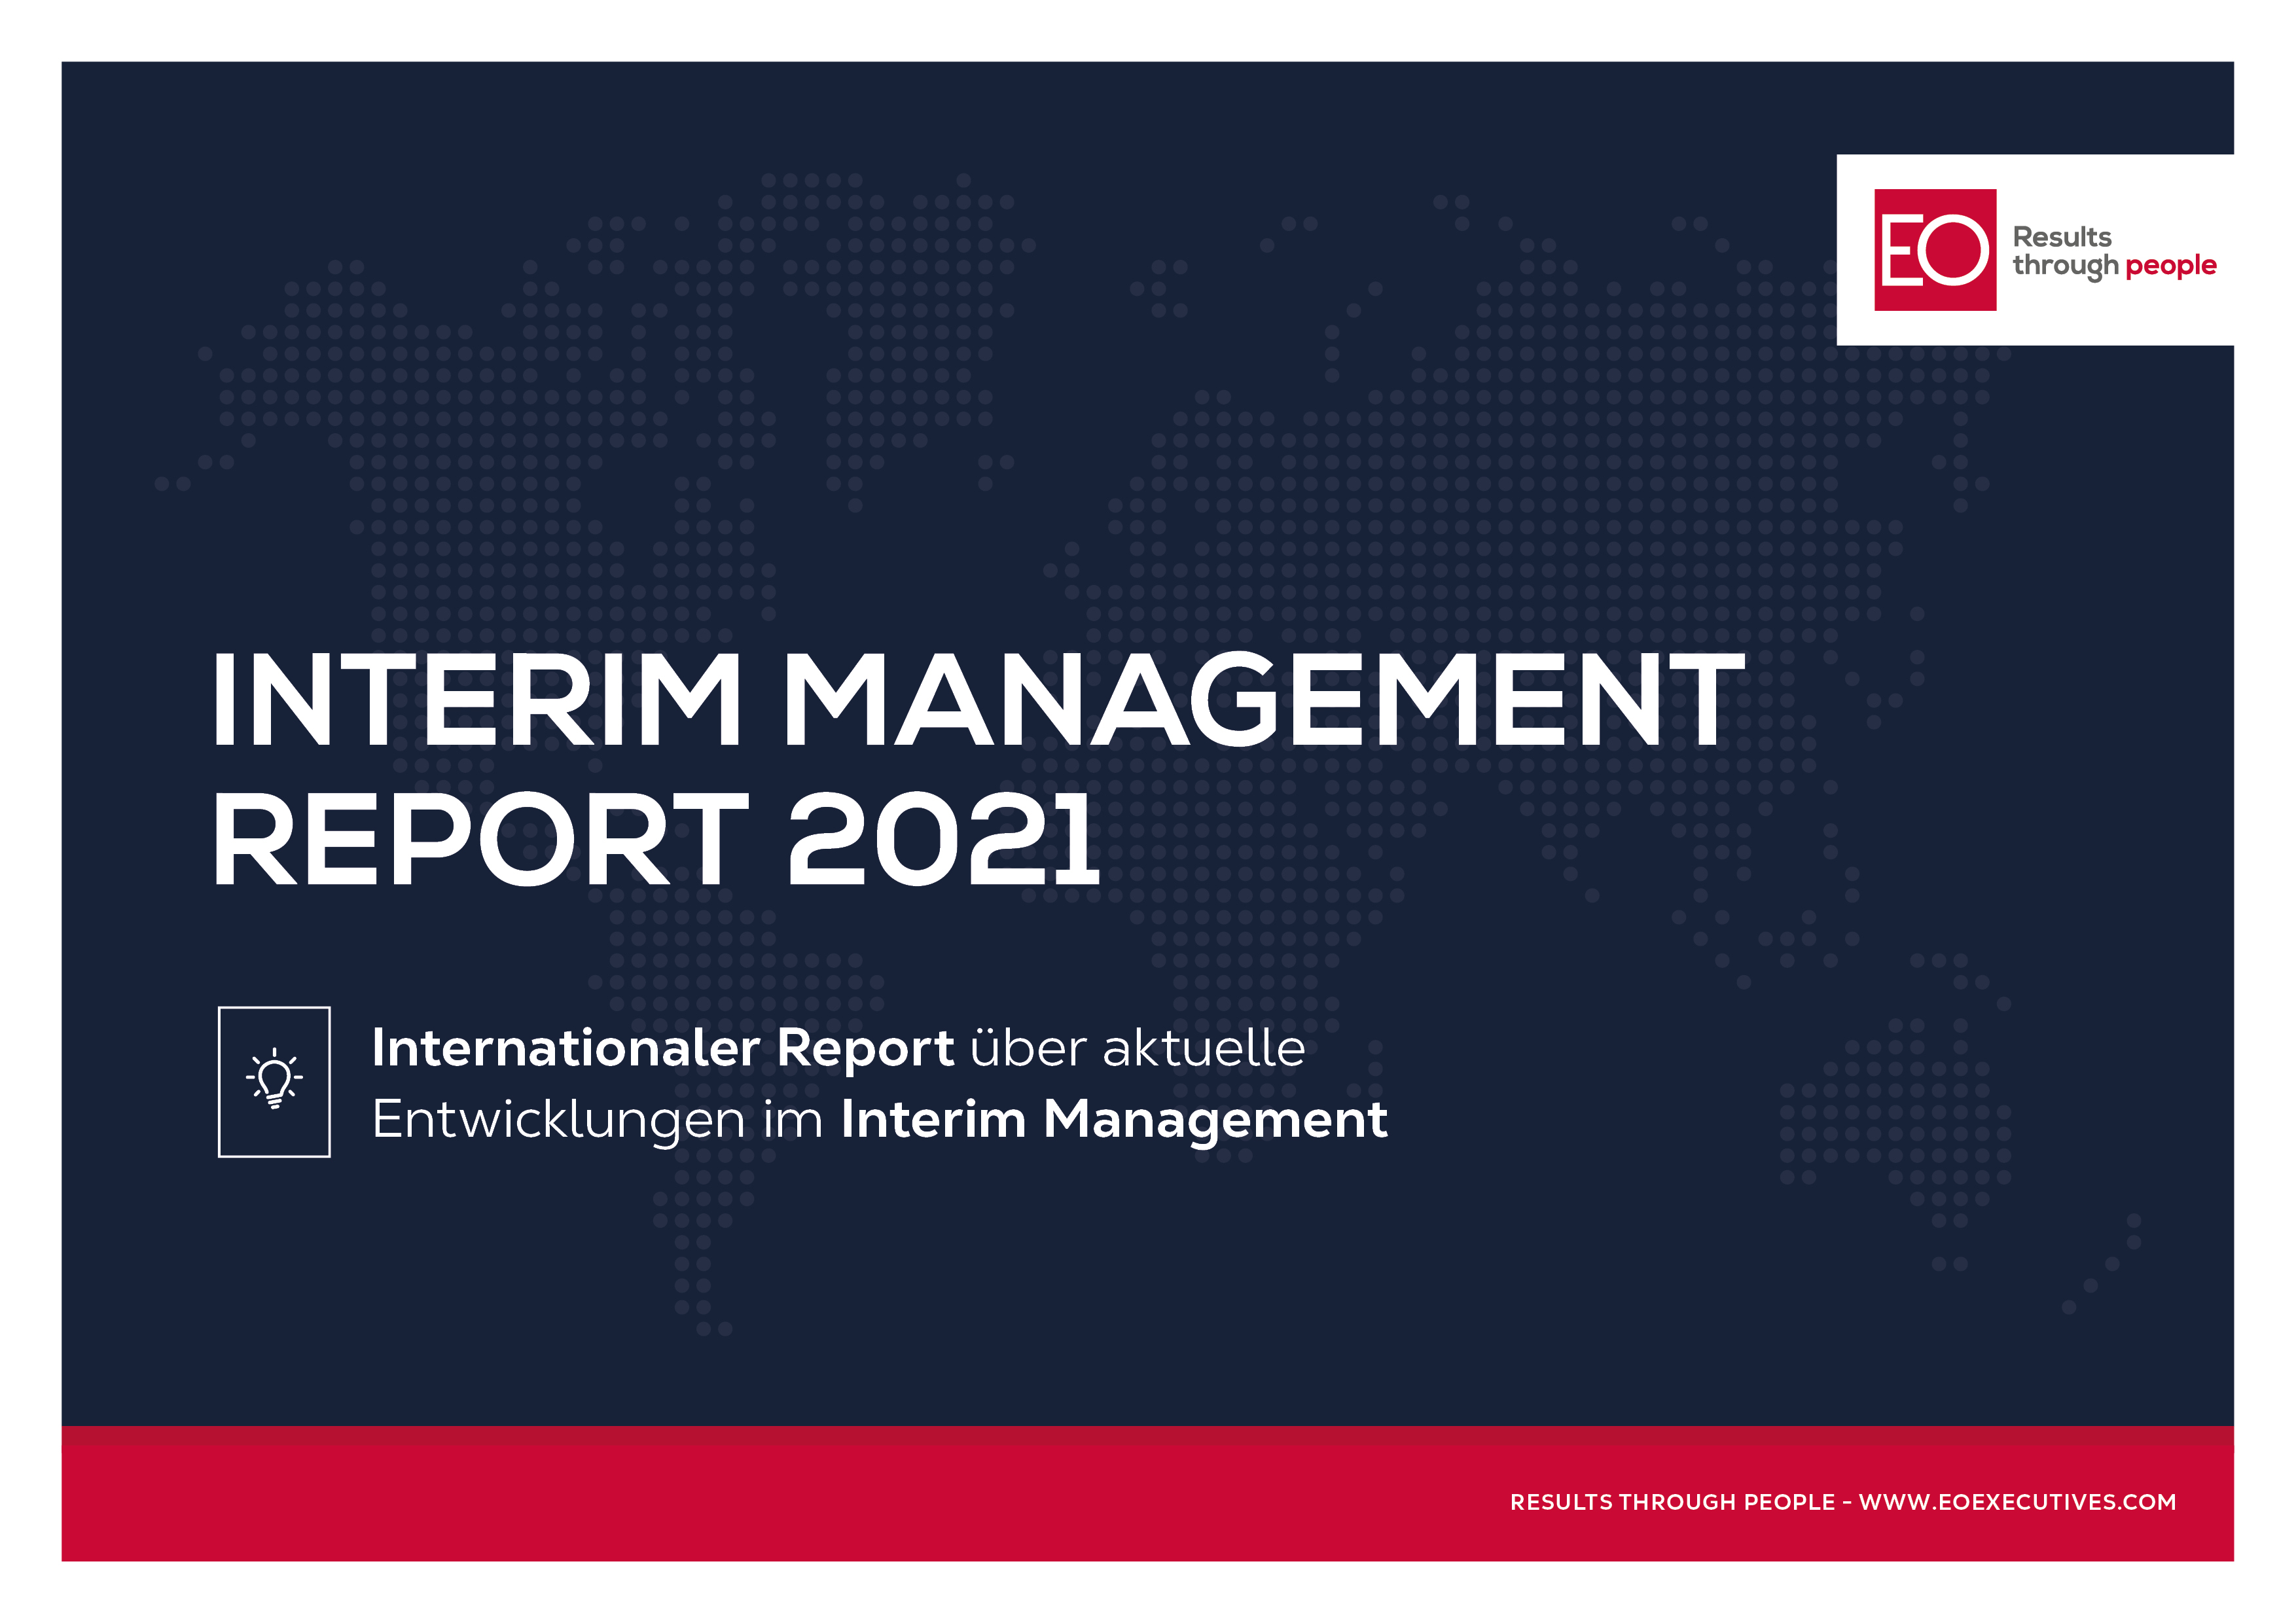 Interim Management Report 2021 by EO Executives - Results through people